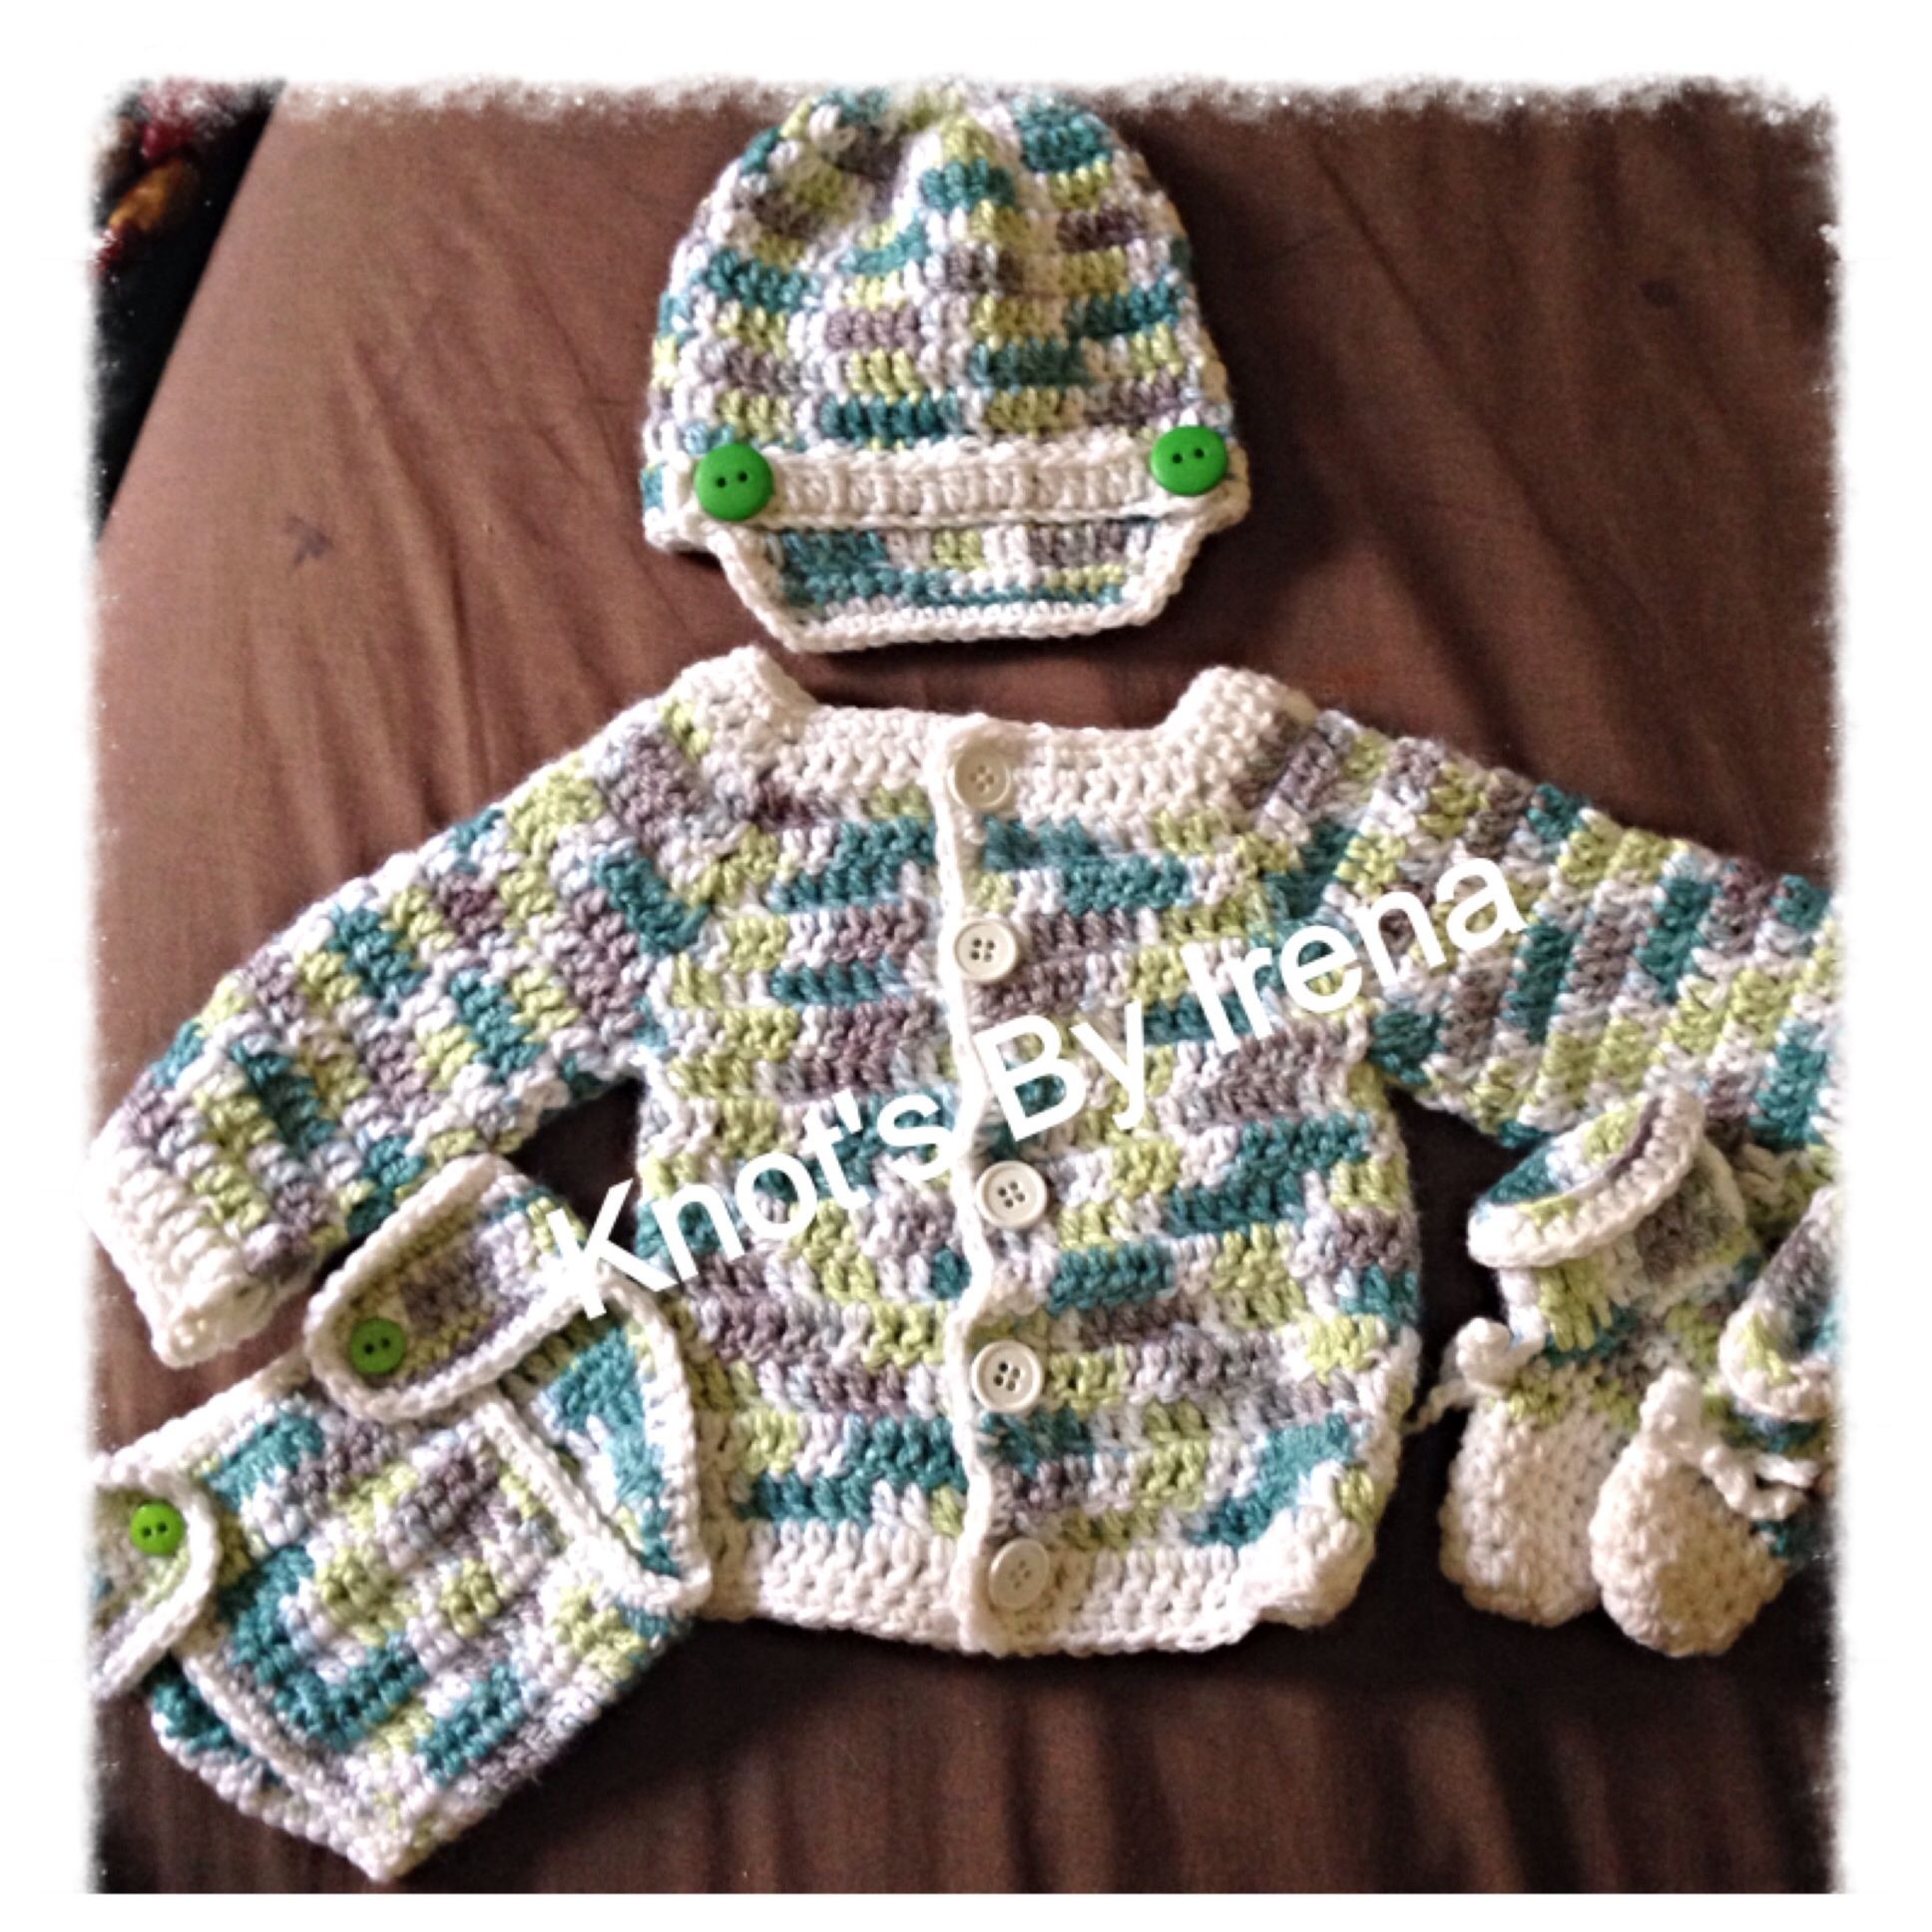 Baby sweater set www.facebook.com/crochetblanketsandclothes